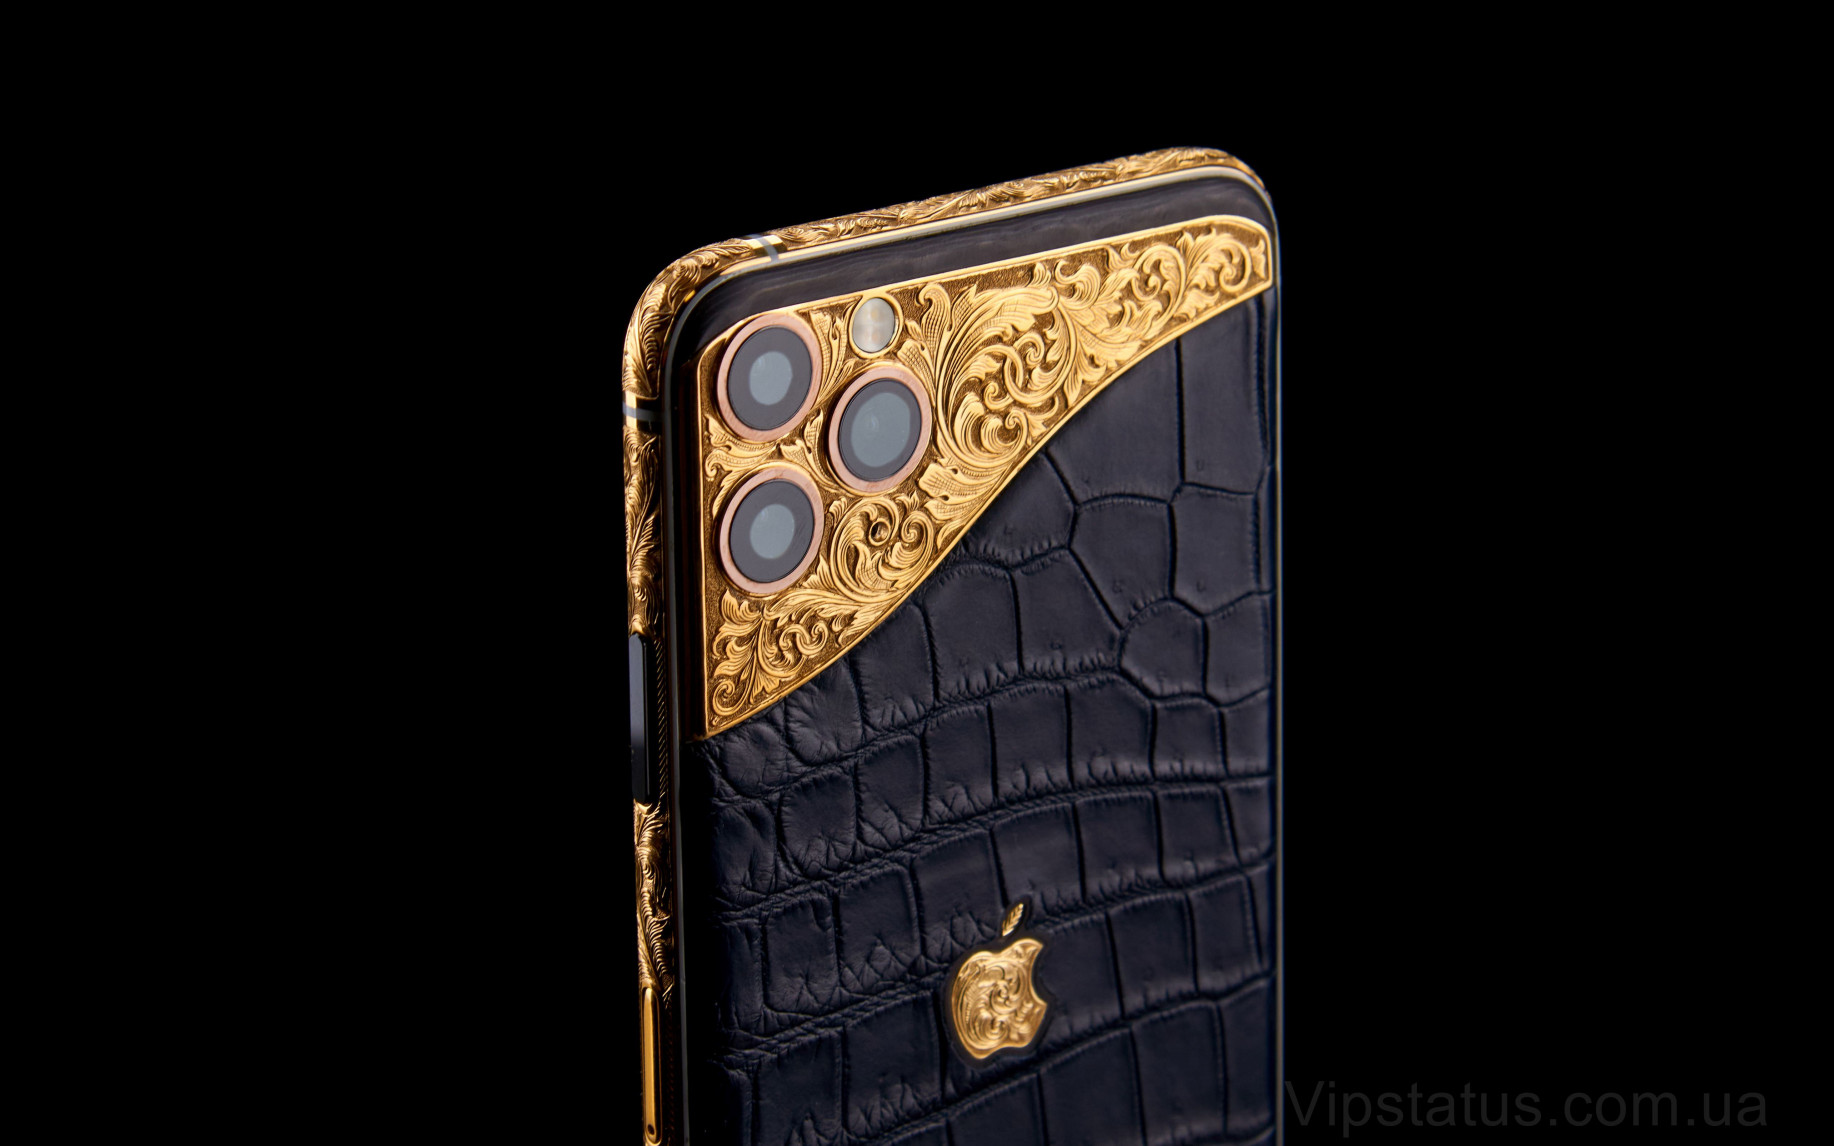 Elite Gold Aristocrate IPHONE 11 PRO 512 GB Gold Aristocrate IPHONE 11 PRO 512 GB image 2